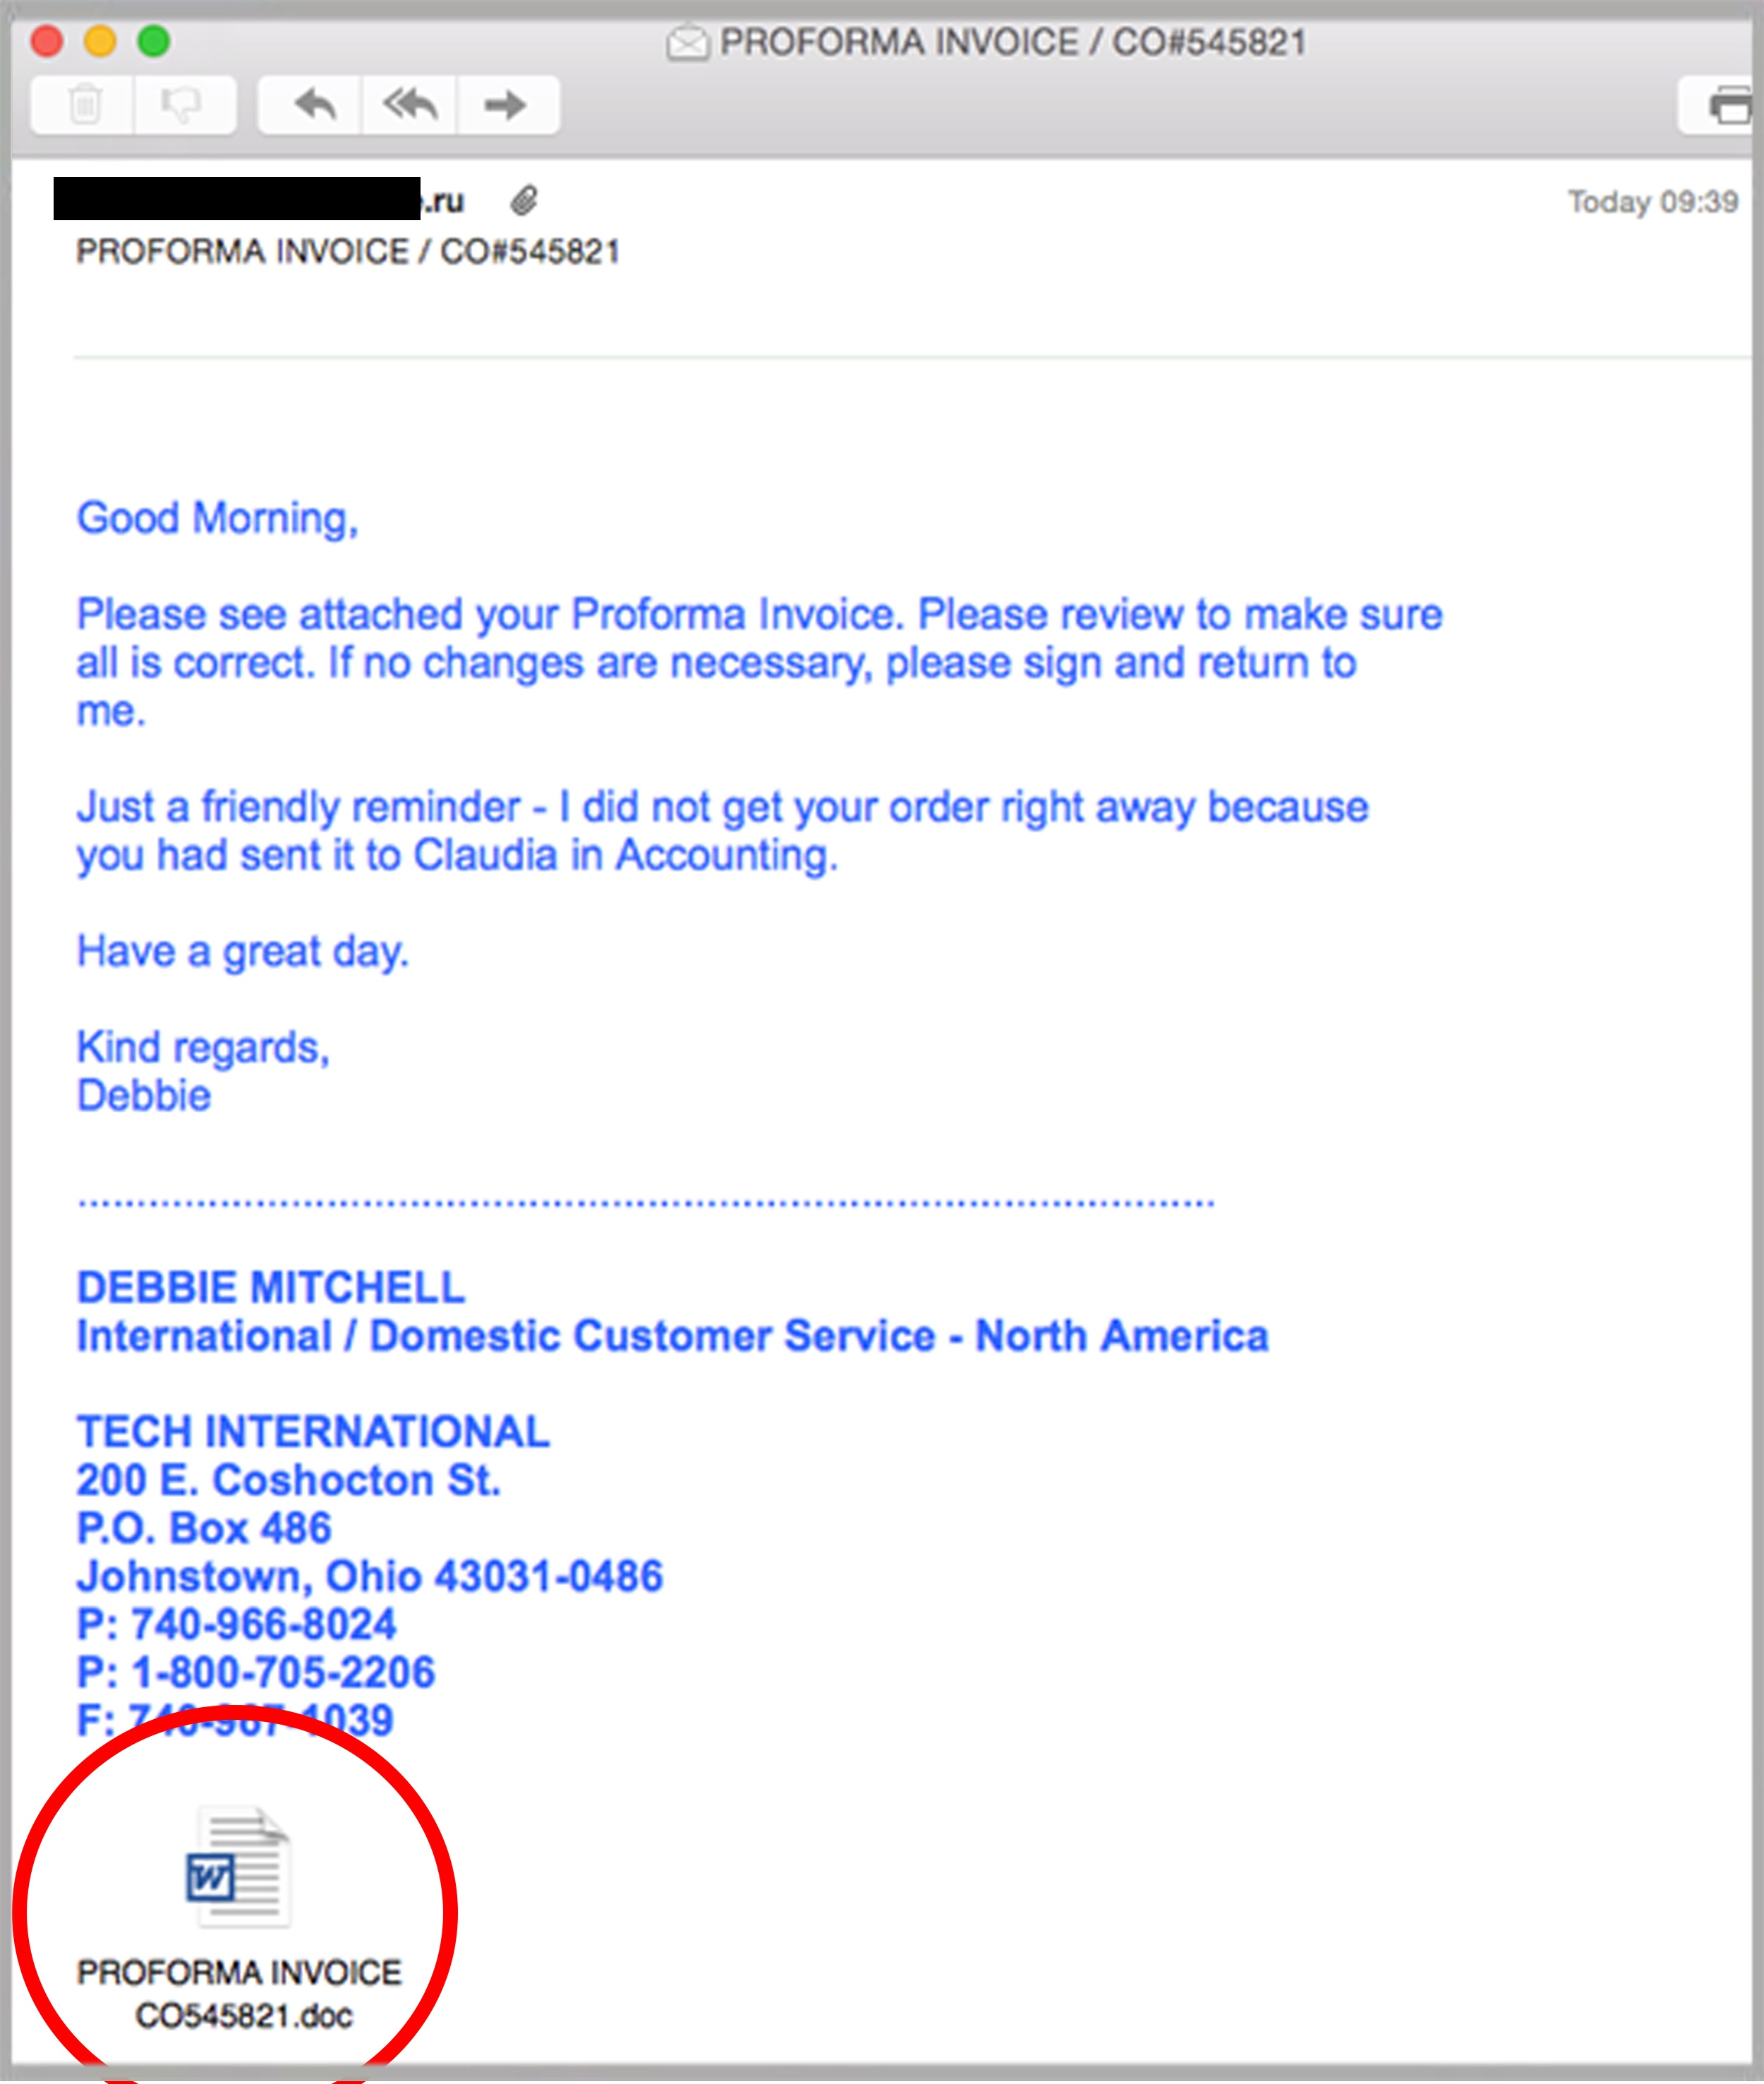 A Sophisticated Fast Breaking Payload Email Identified By MailGuard Today  Exploits A Bug In Unpatched Versions Of Microsoft Office.  How To Email An Invoice